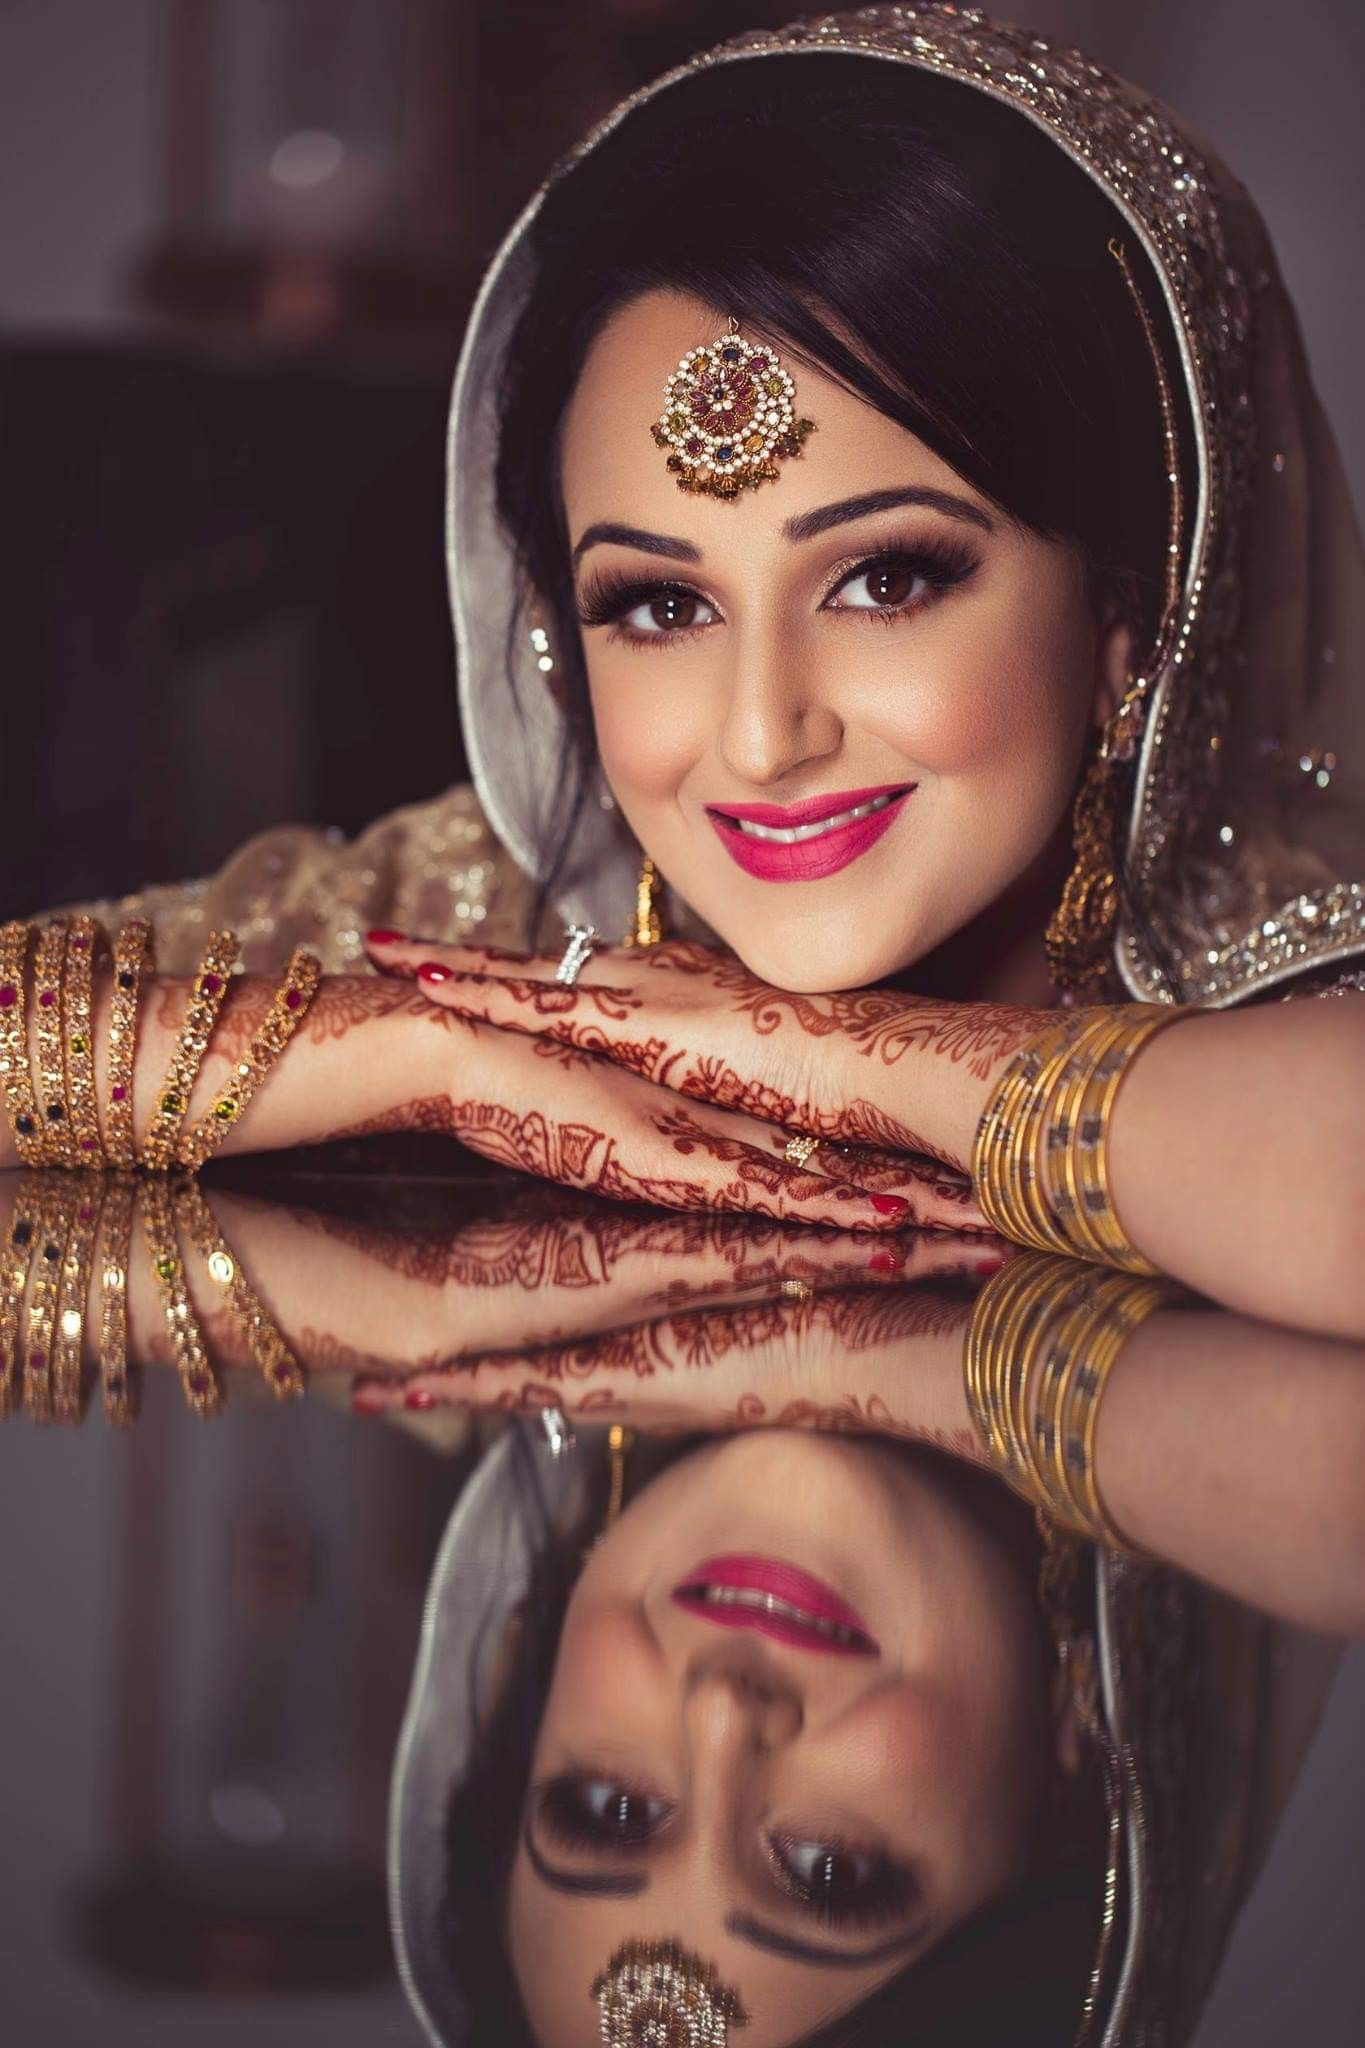 shikachand | bridal in 2019 | indian wedding photography